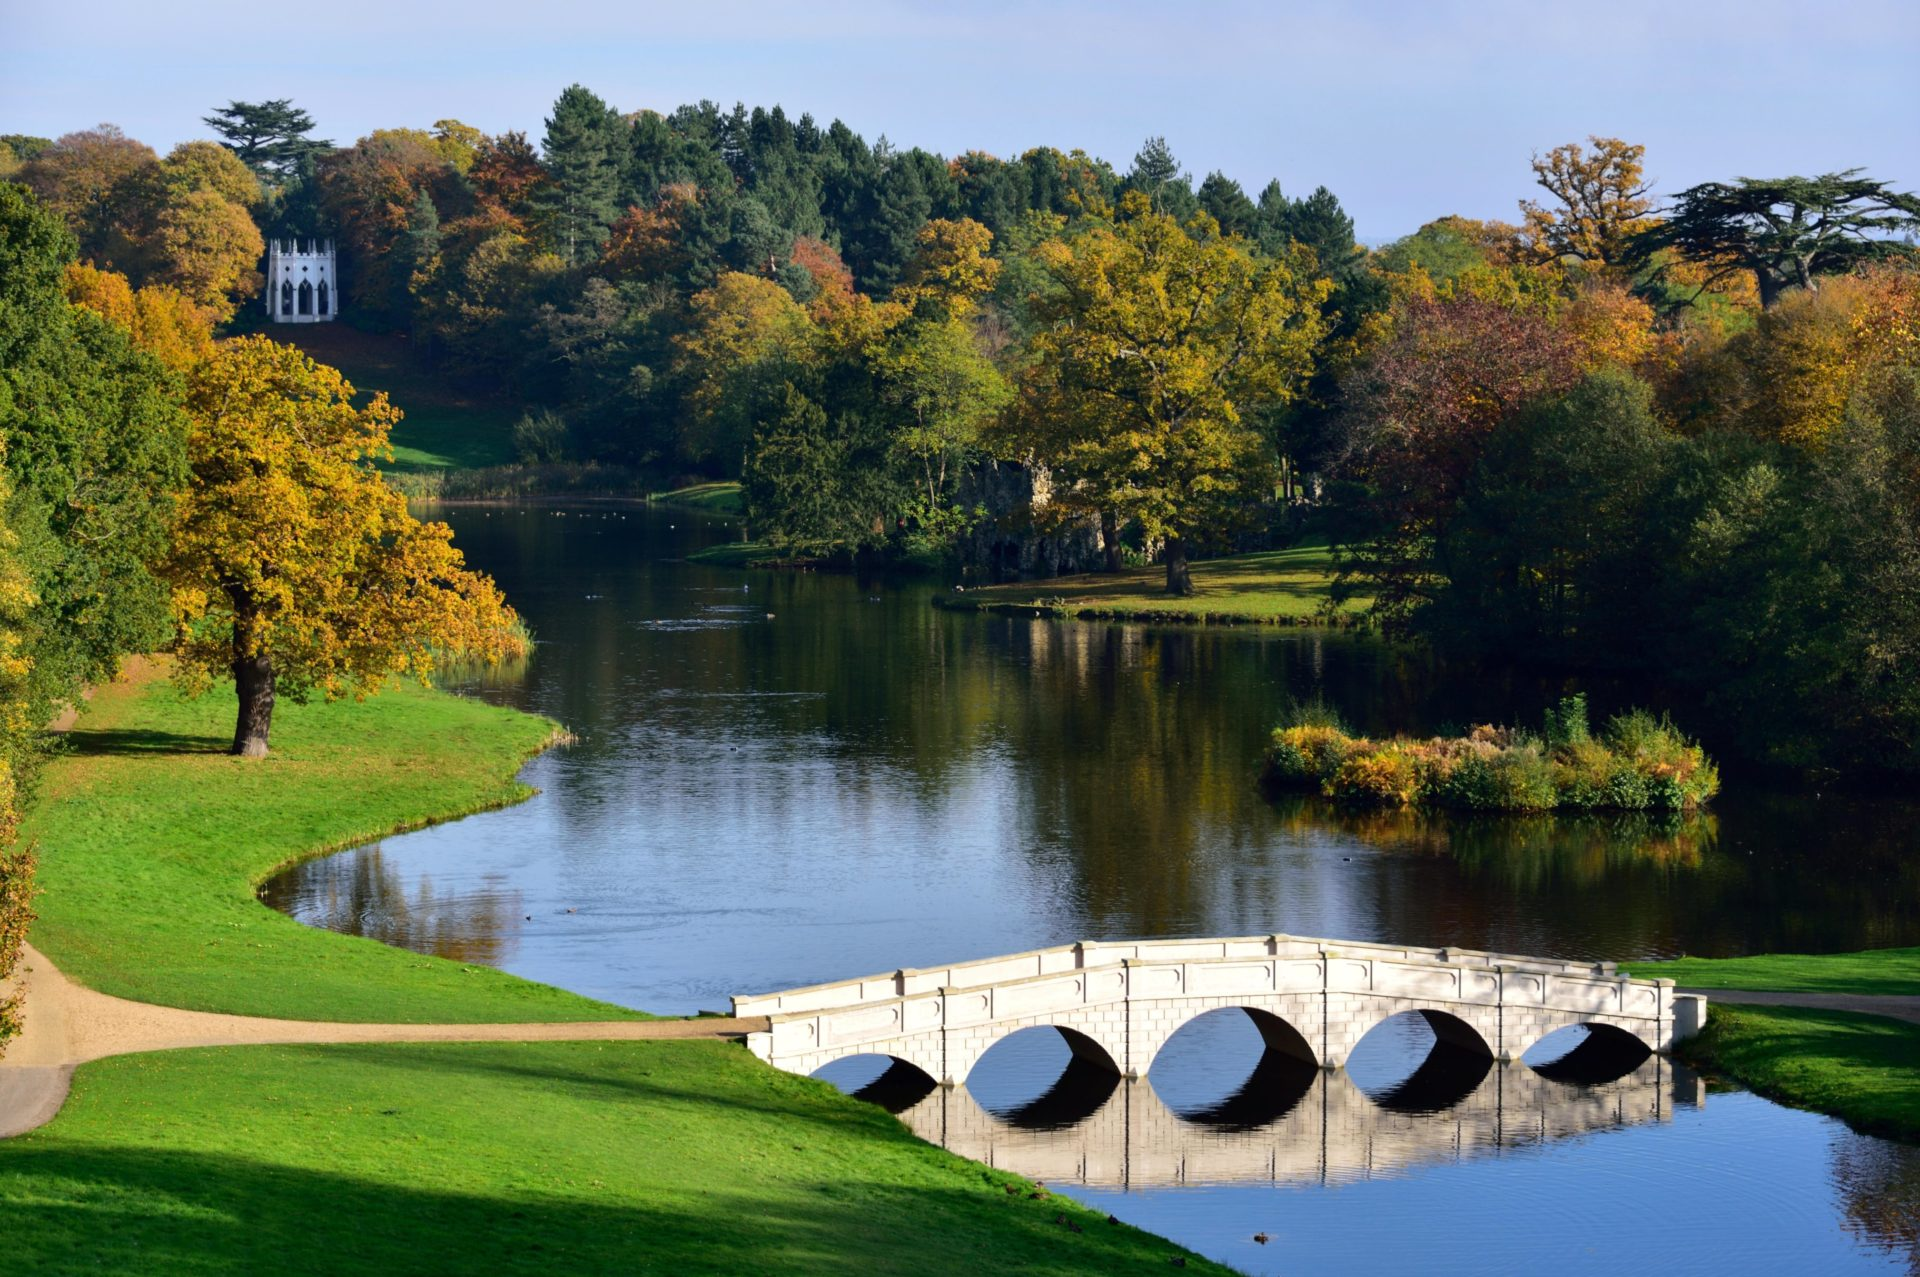 Autumn View of Painshill Park, with the 5 Arch Bridge and the Gothic Temple